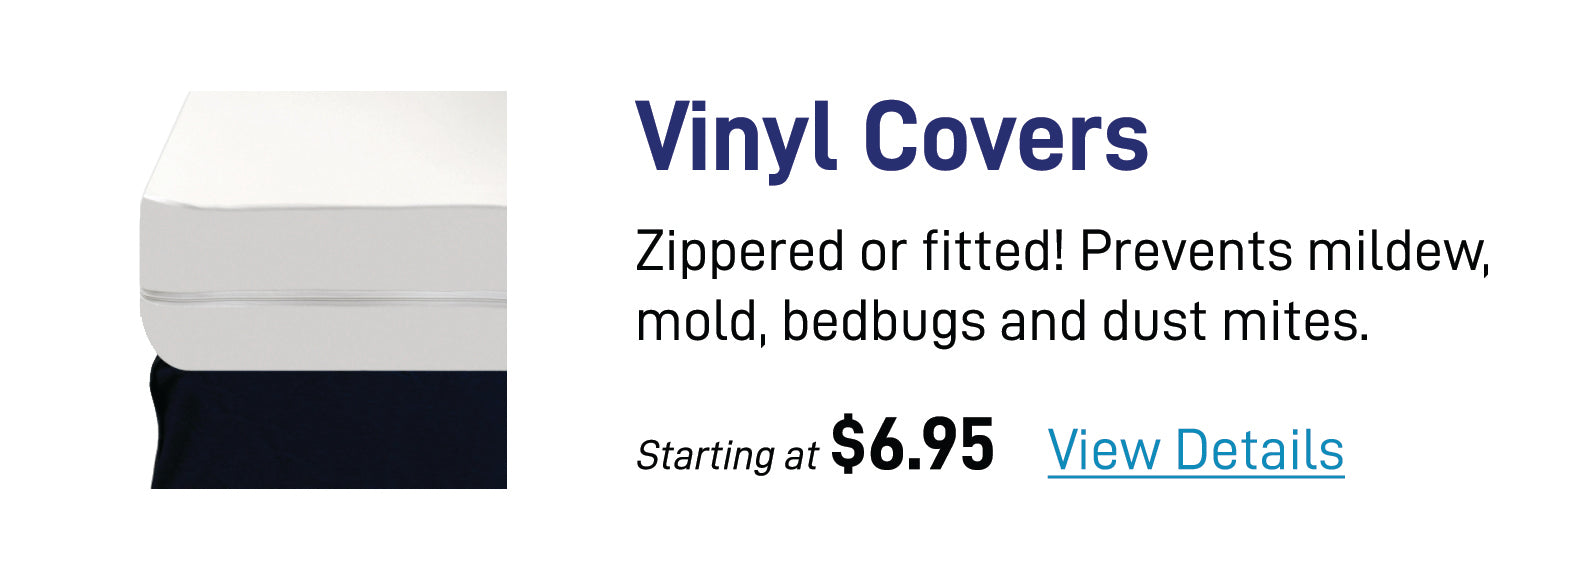 Vinyl Covers - Zippered or Fitted! Prevents mildew, mold, bedbugs and dust mites!